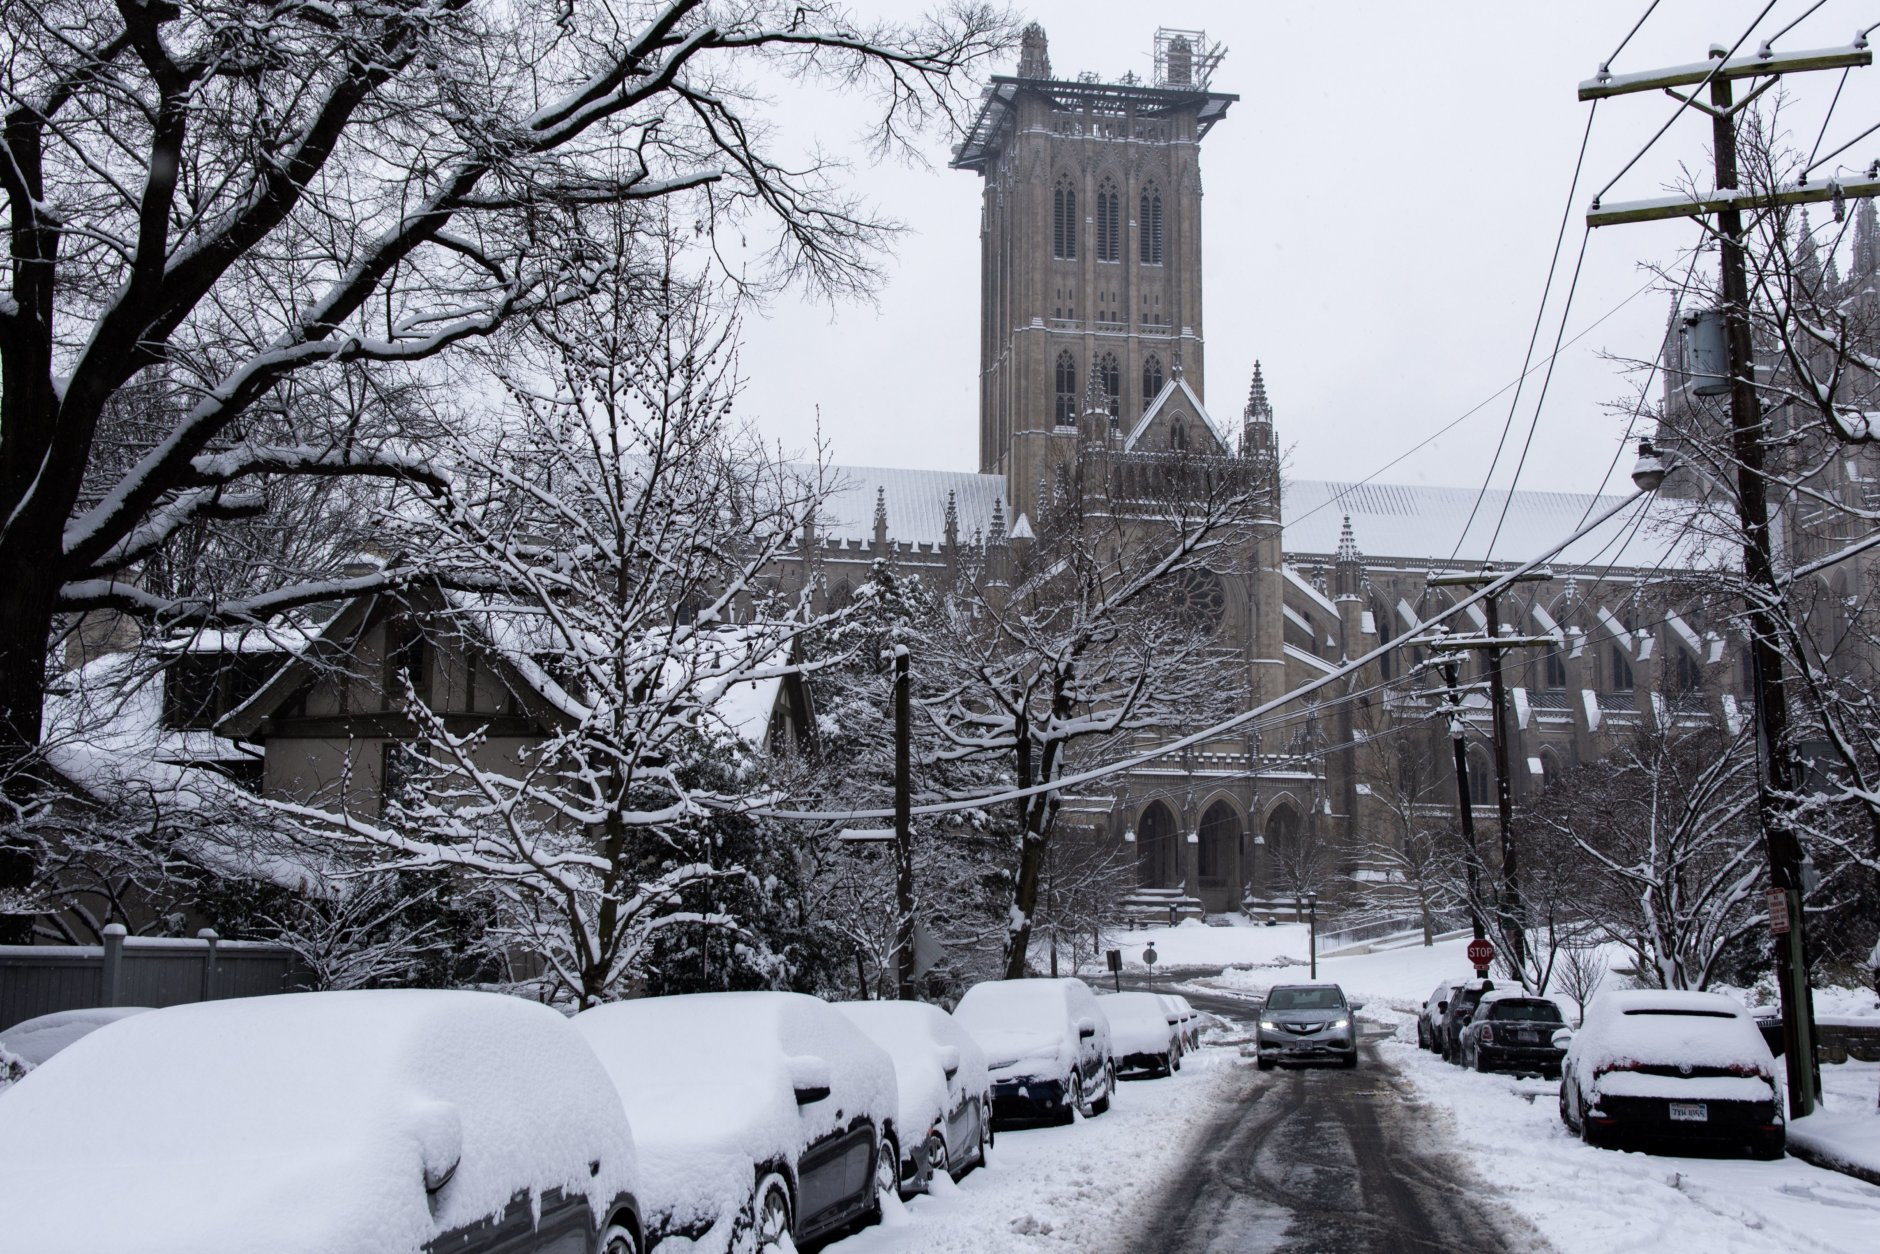 Despite the possibility of more snow, cleanup efforts were already underway and moving at a quick pace in most of D.C. Roadways impassable overnight were largely cleared of snow by mid-morning, though work continued on side streets such as this one near the National Cathedral. (WTOP/Alejandro Alvarez)